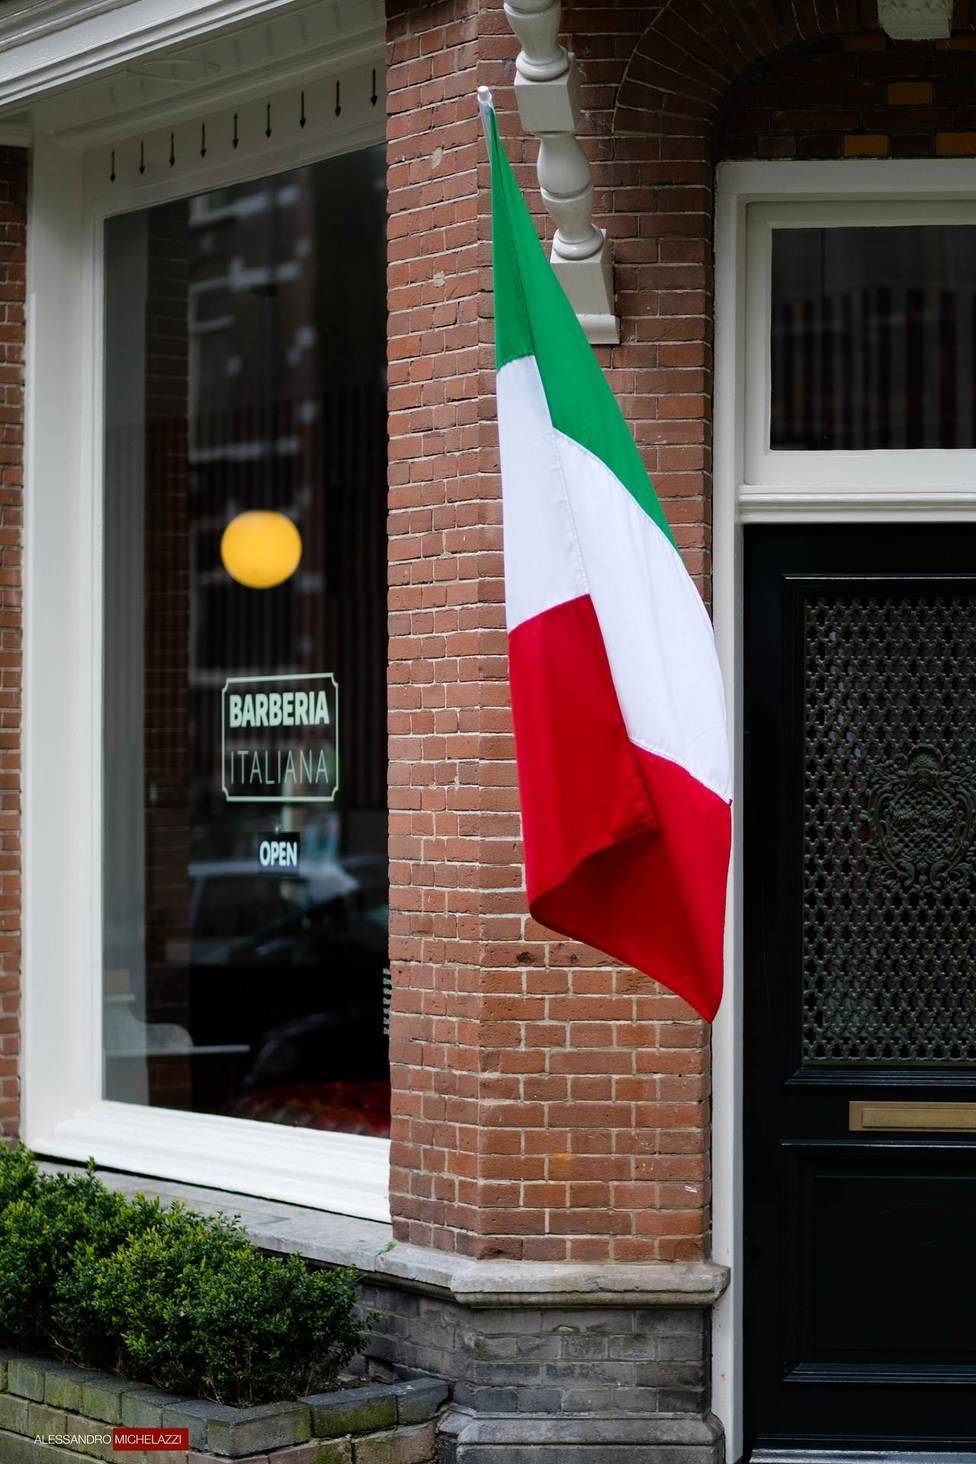 The Italian flag outside the shop: to be proud of it!